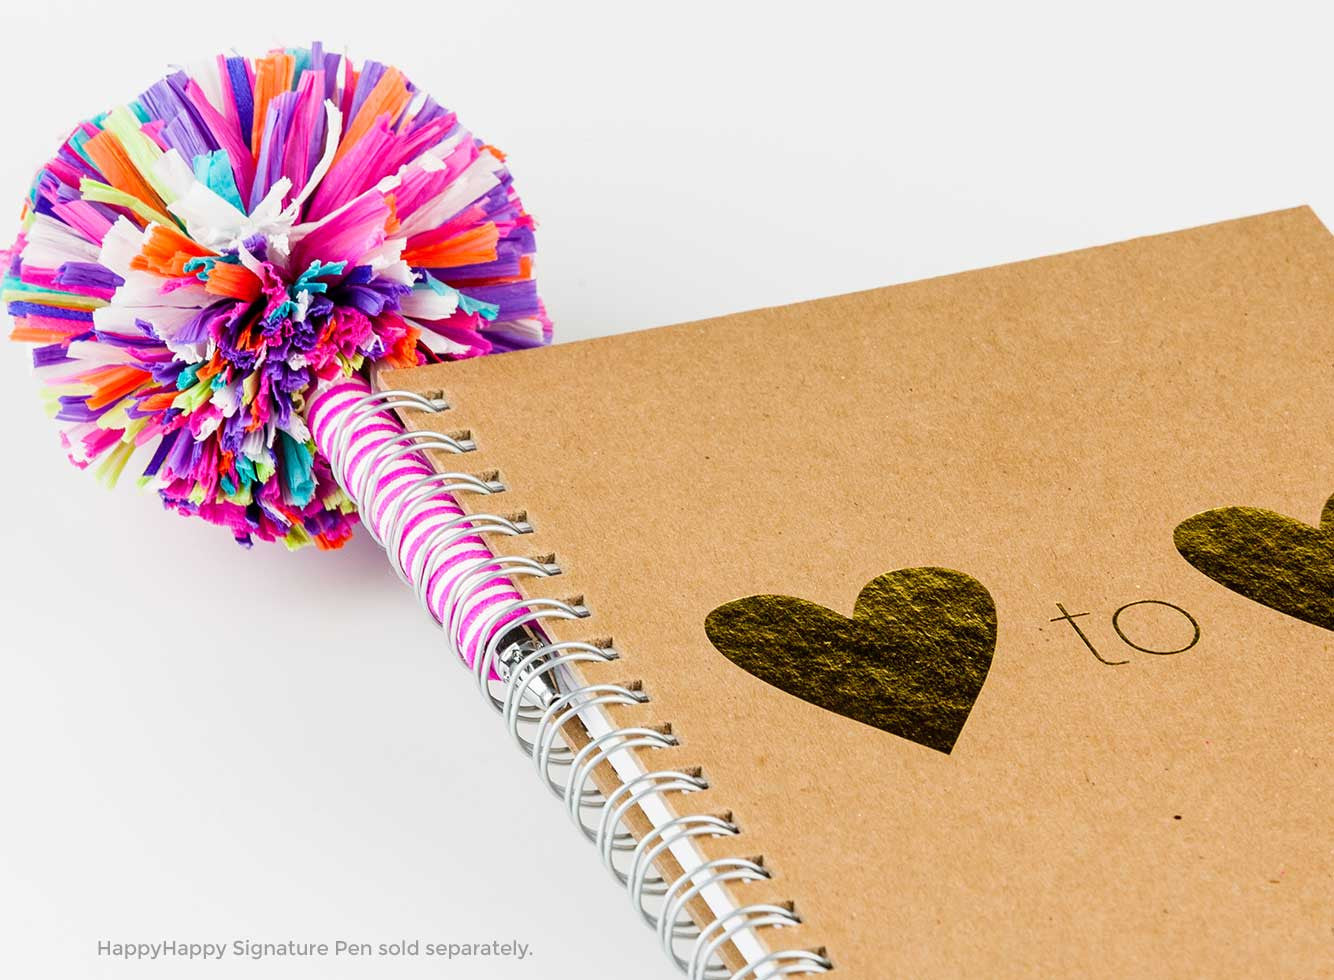 Heart to Heart Journal with handmade HappyHappy Signature specialty pen